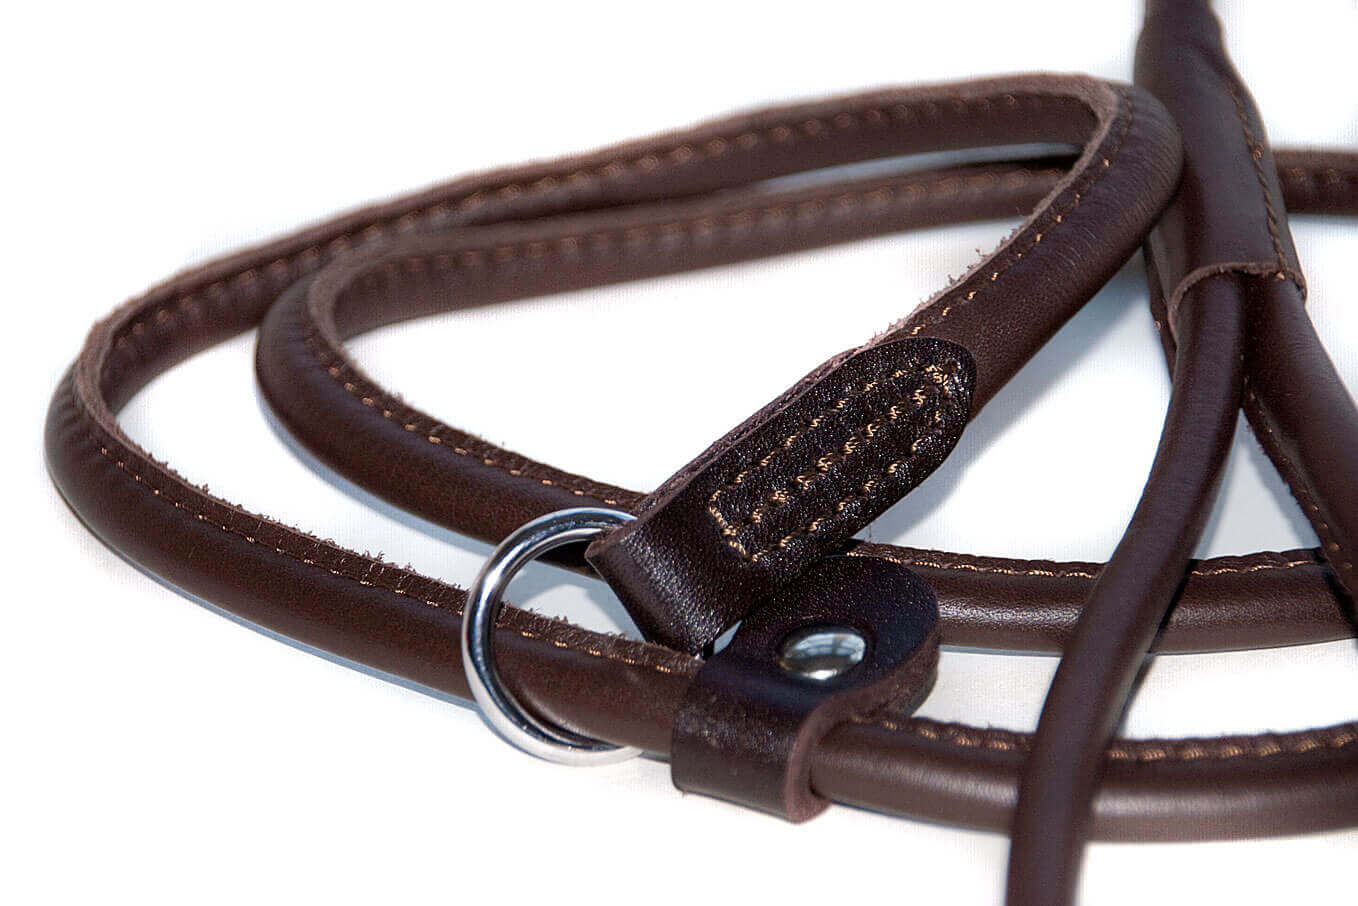 Leather stopper to fit slip lead correctly over your dog